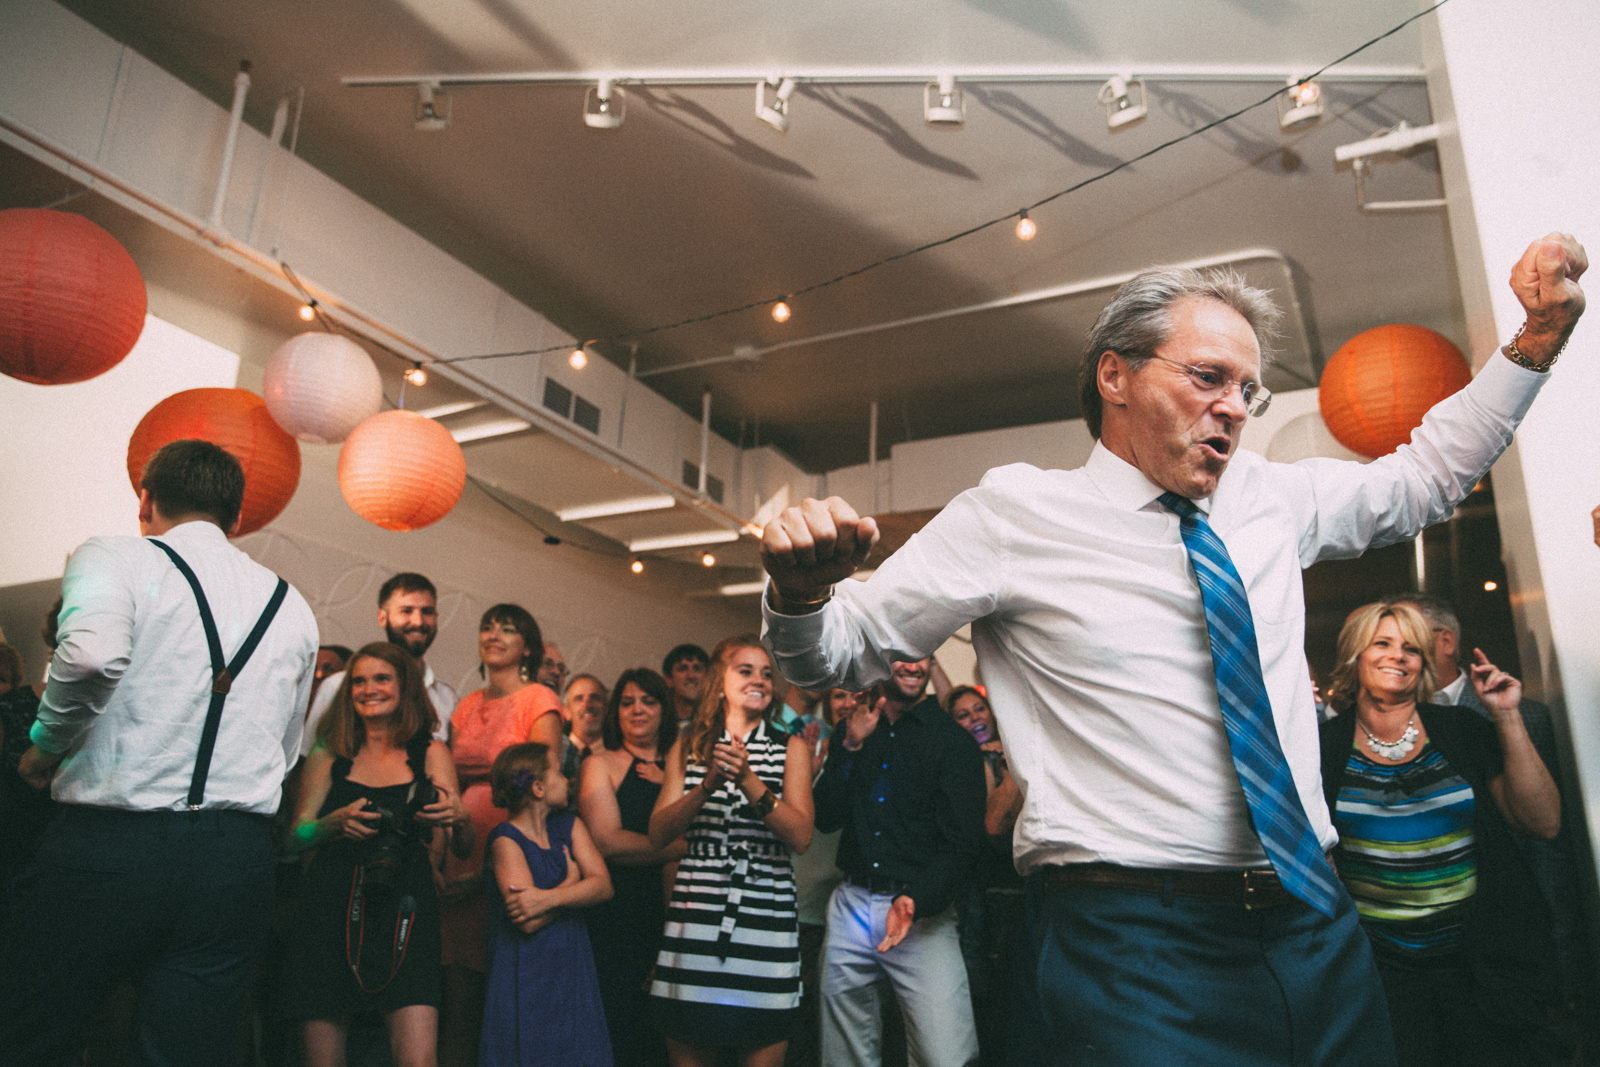 Father of groom dancing at his wedding reception in Kansas City